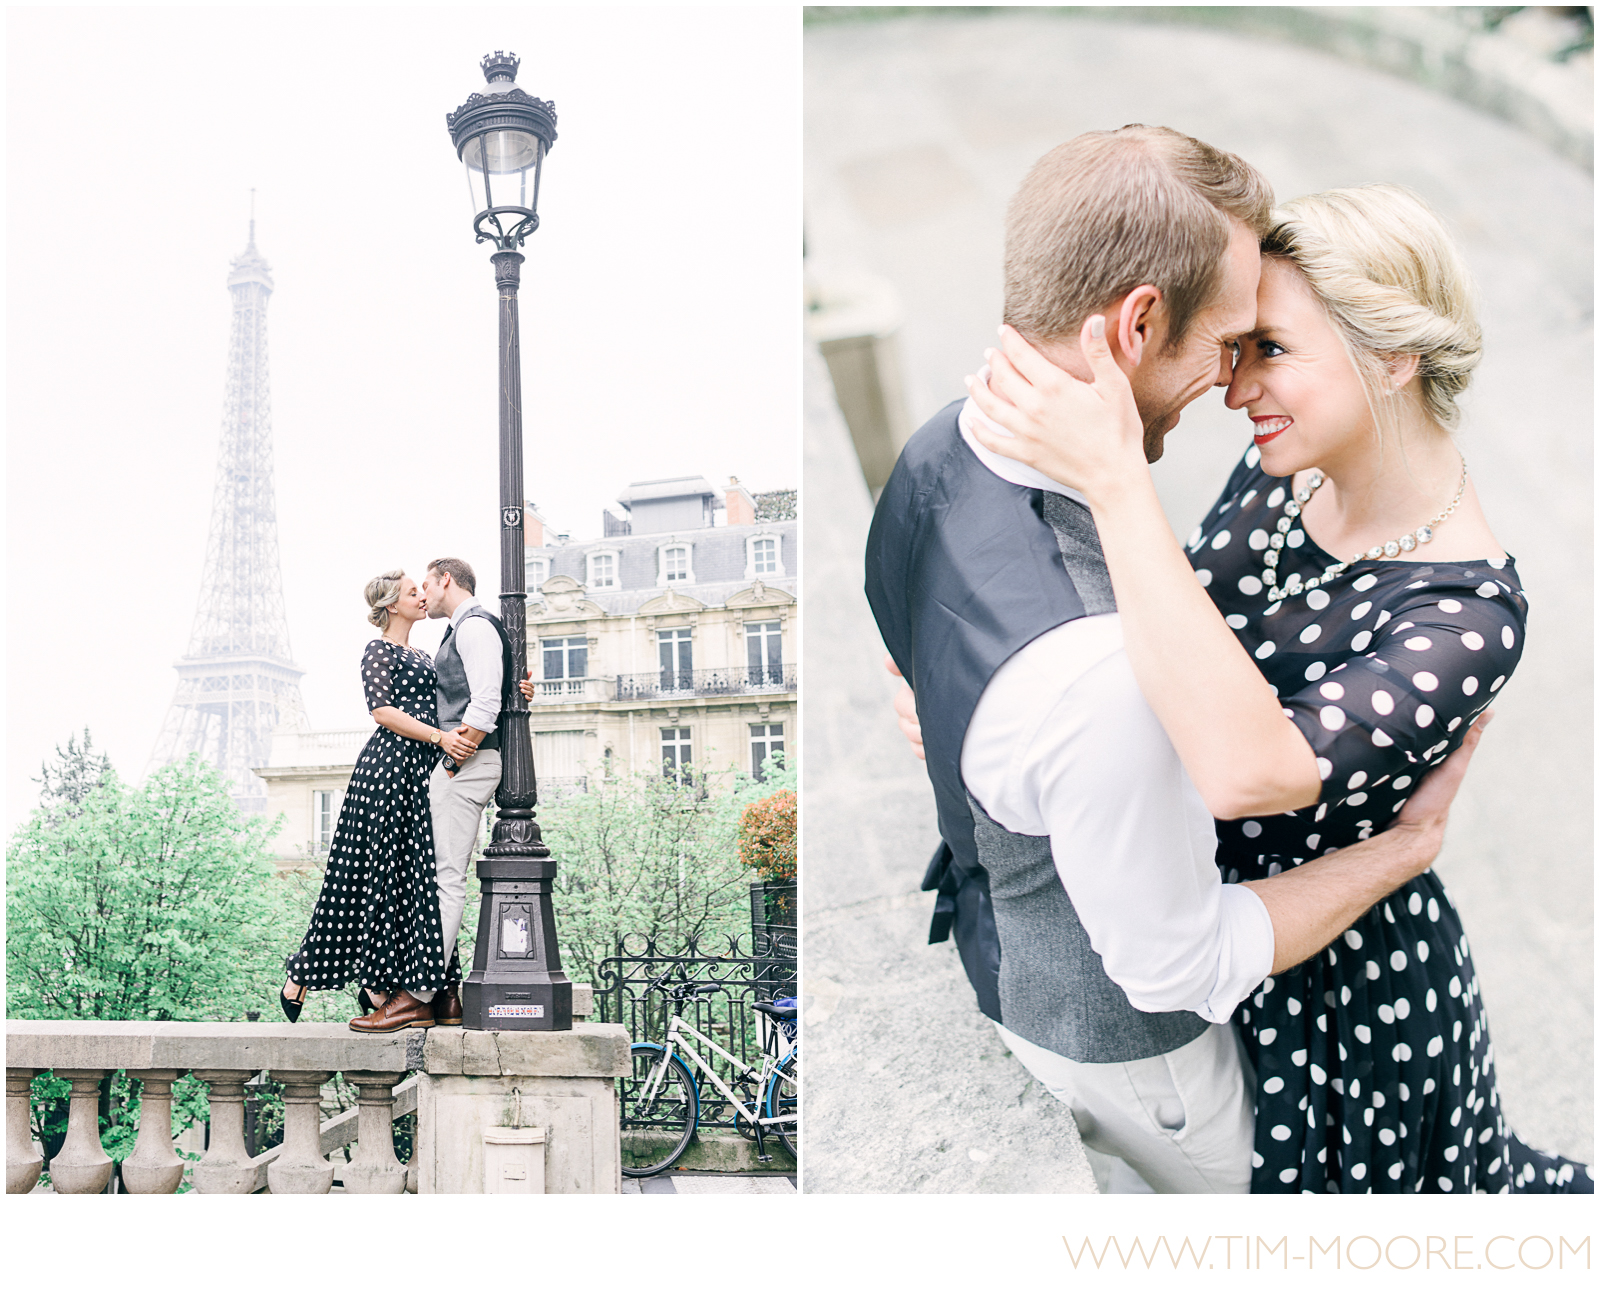 Paris Photographer - celebrating their love with a couple photo shoot in Paris